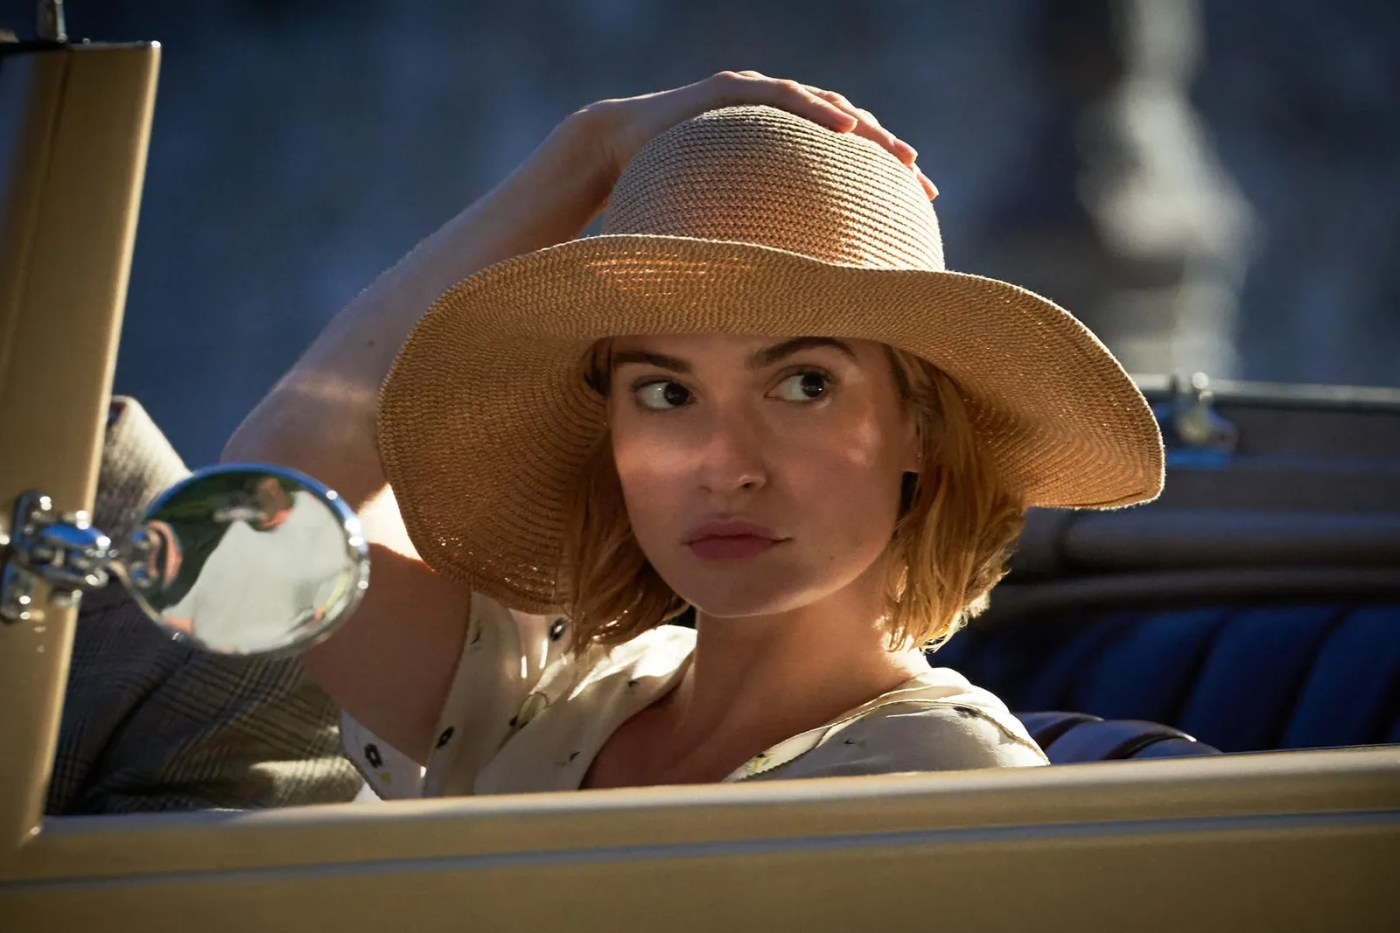 Lily James wearing hat in car for Rebecca